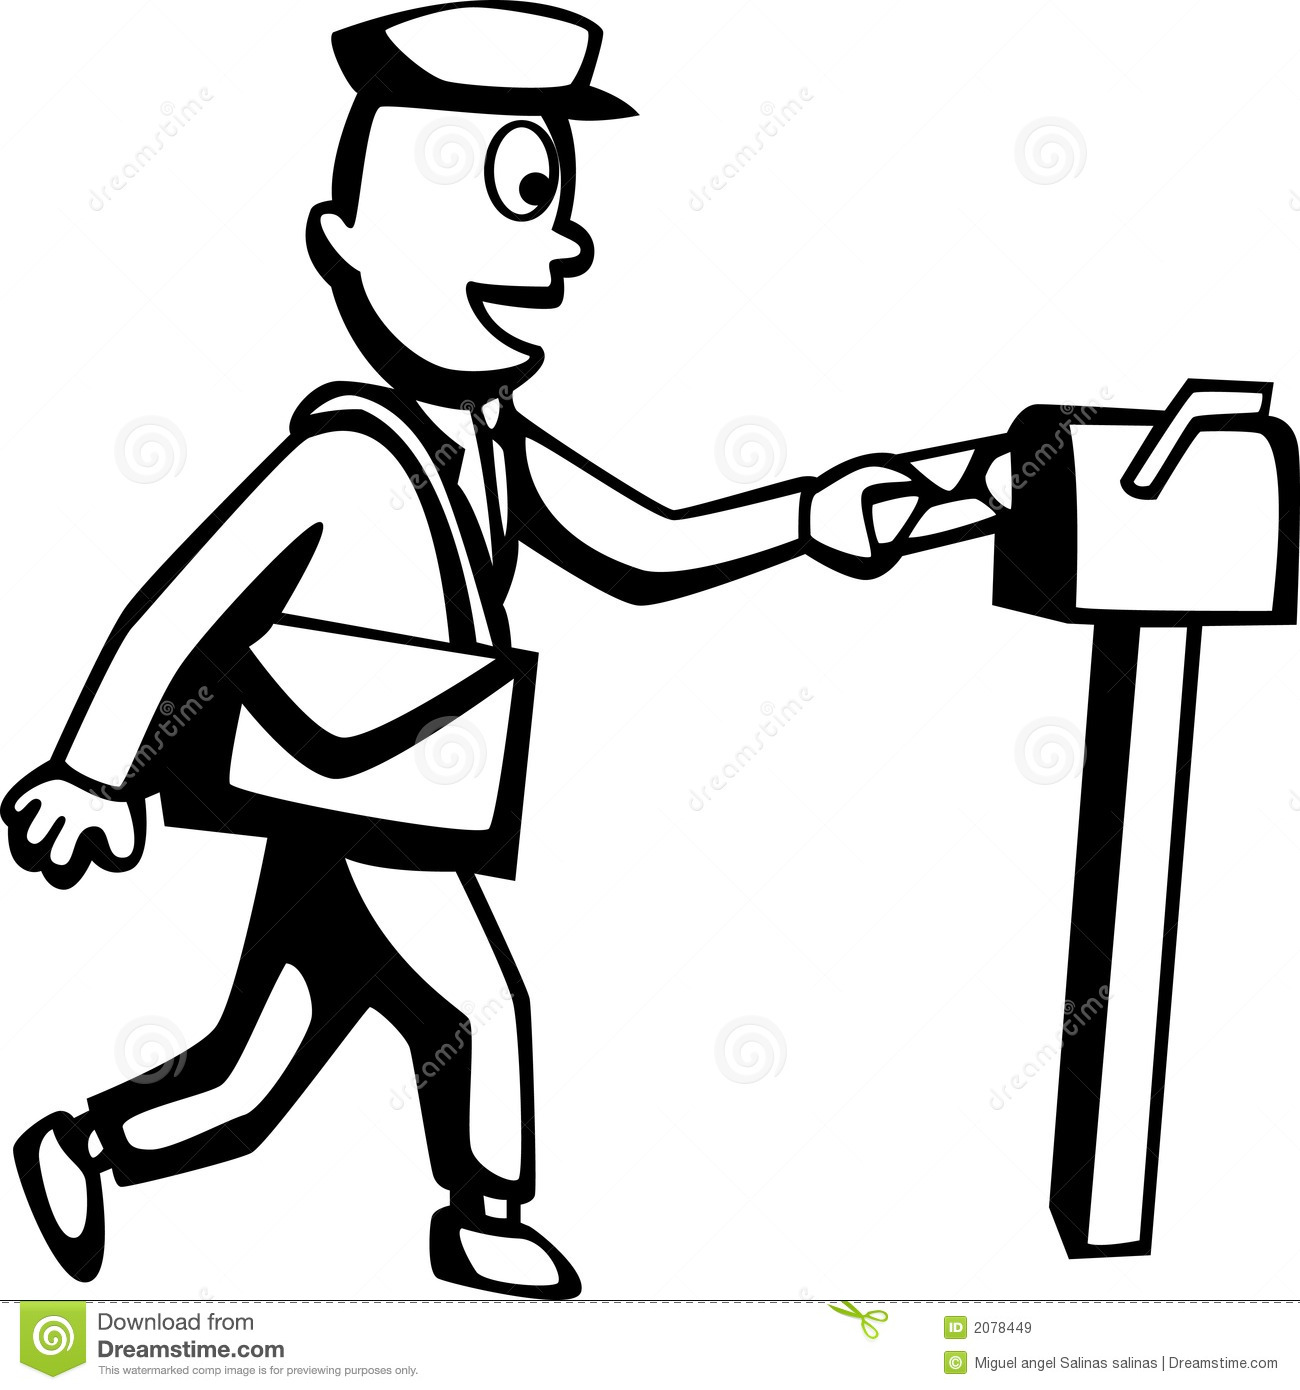 Mailman Royalty Free Stock Images